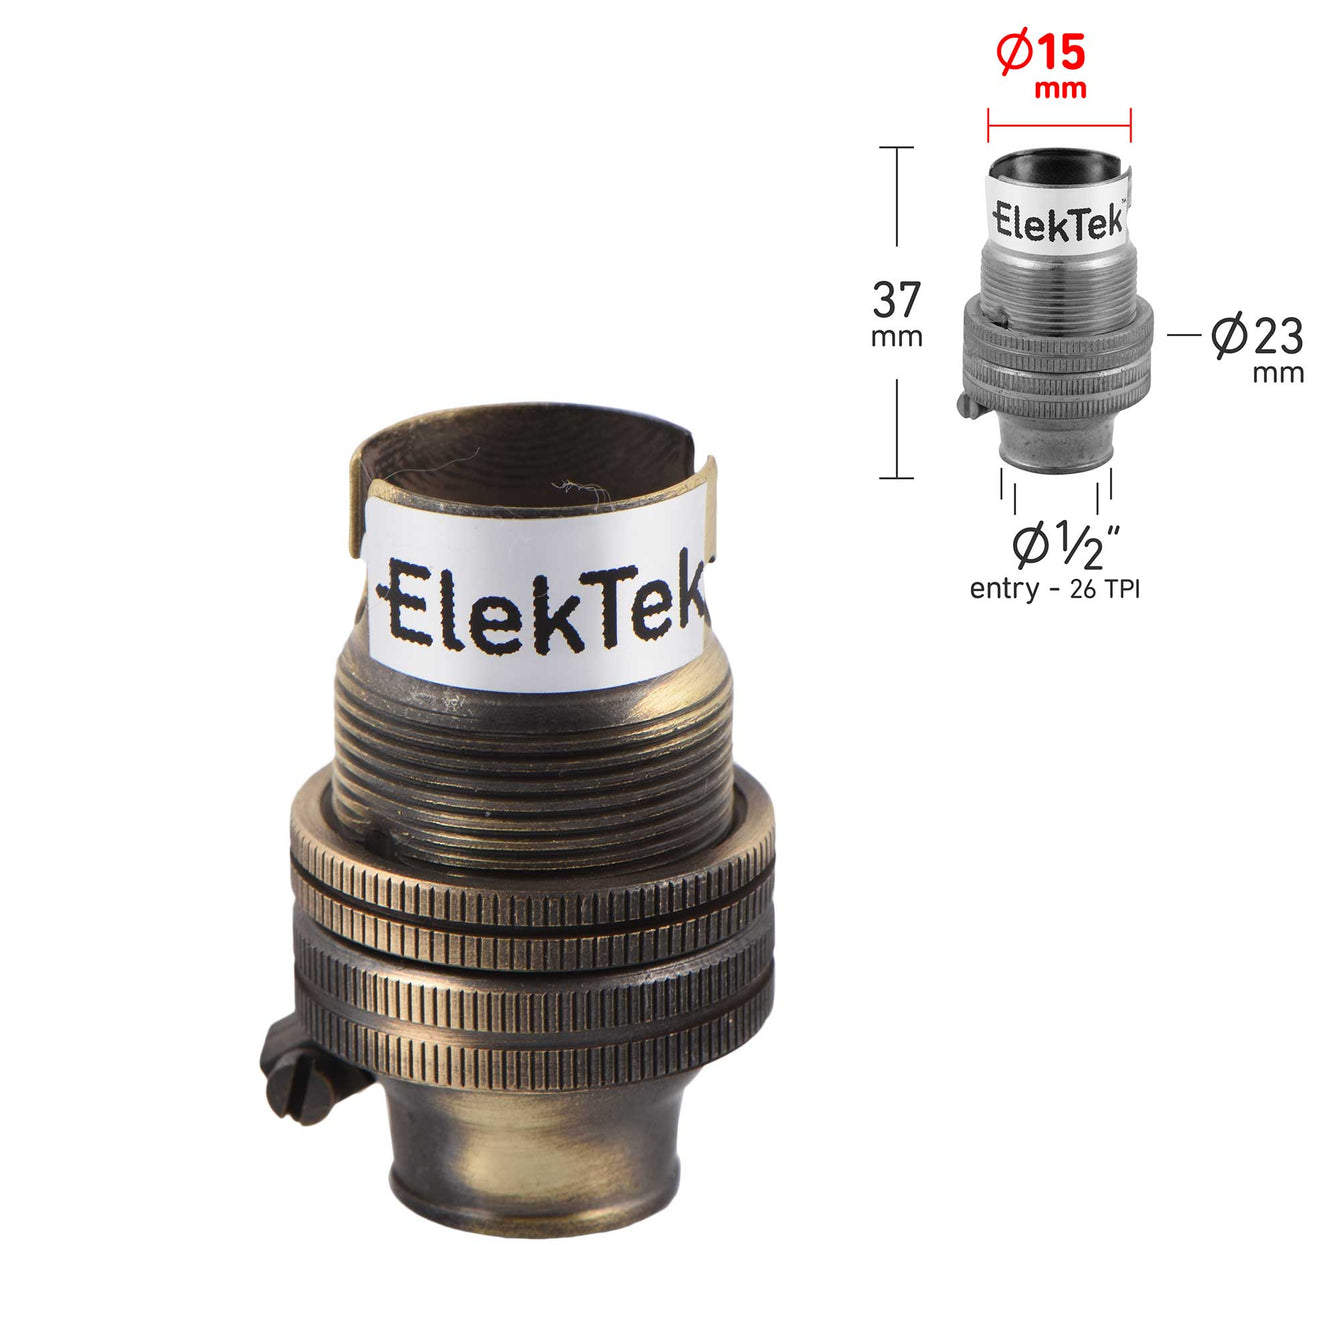 ElekTek Lamp Holder 10mm or Half Inch Entry Miniature Small Bayonet Cap SBC B15 With Shade Ring Solid Brass - Buy It Better Chrome / Half Inch